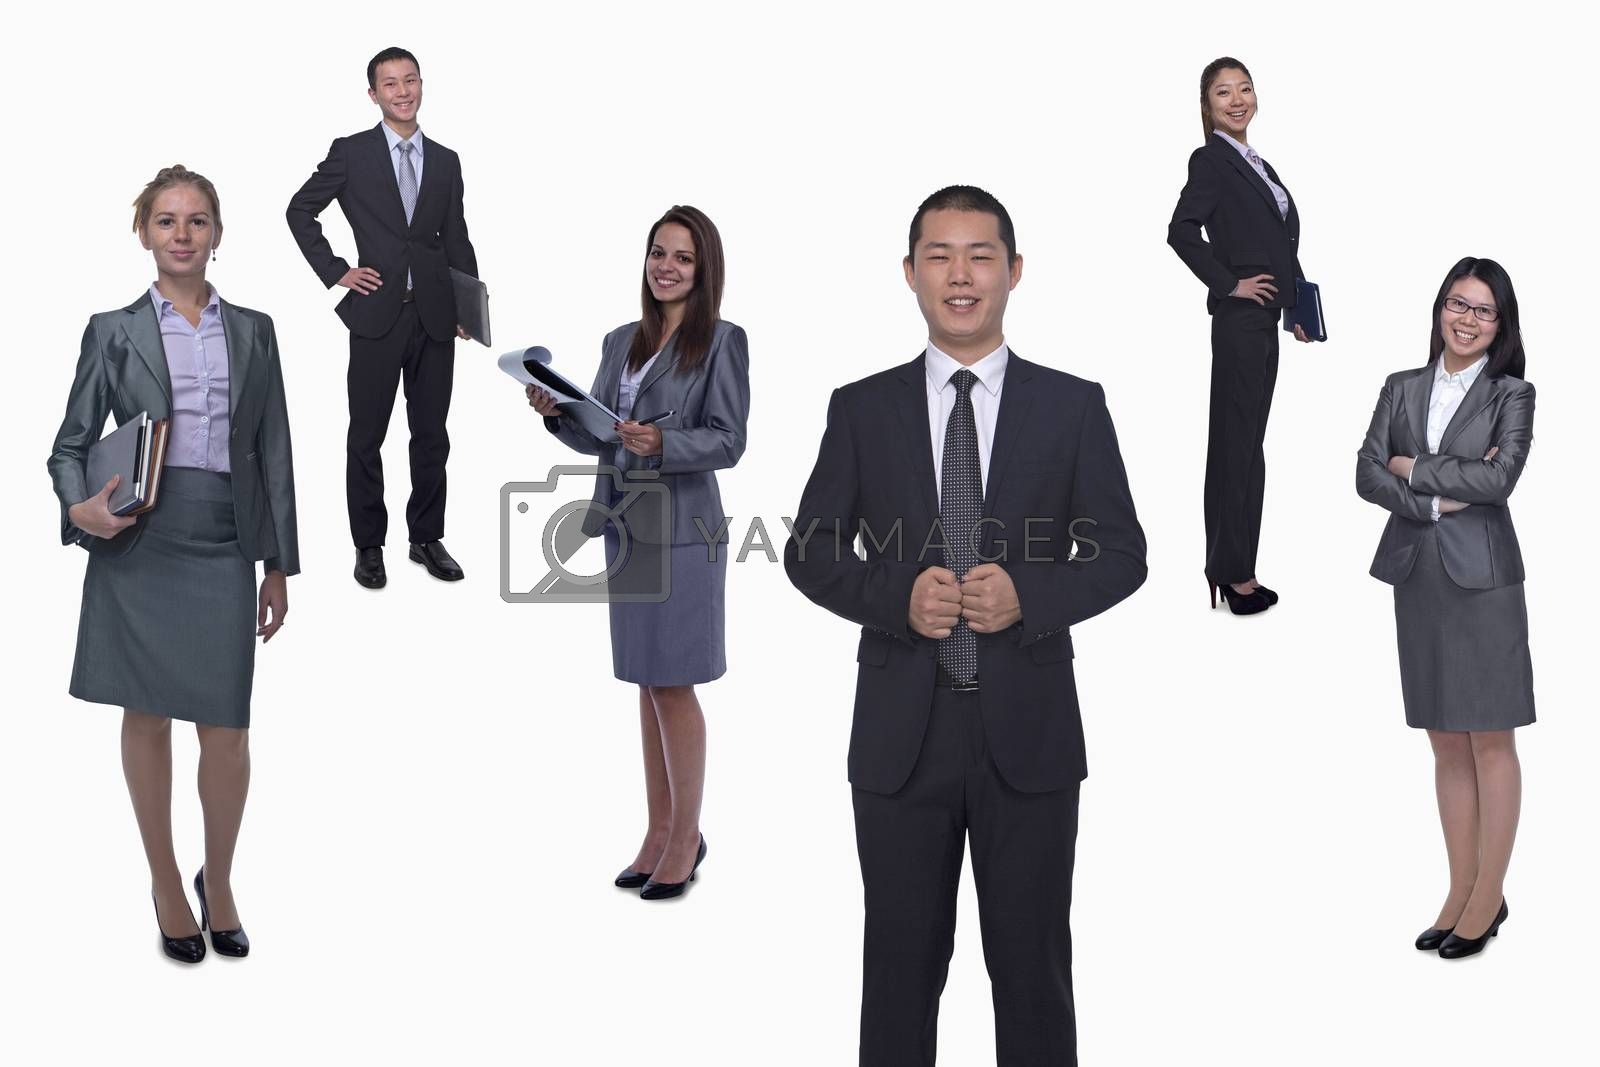 Medium group of smiling business people, portrait, full length, studio shot